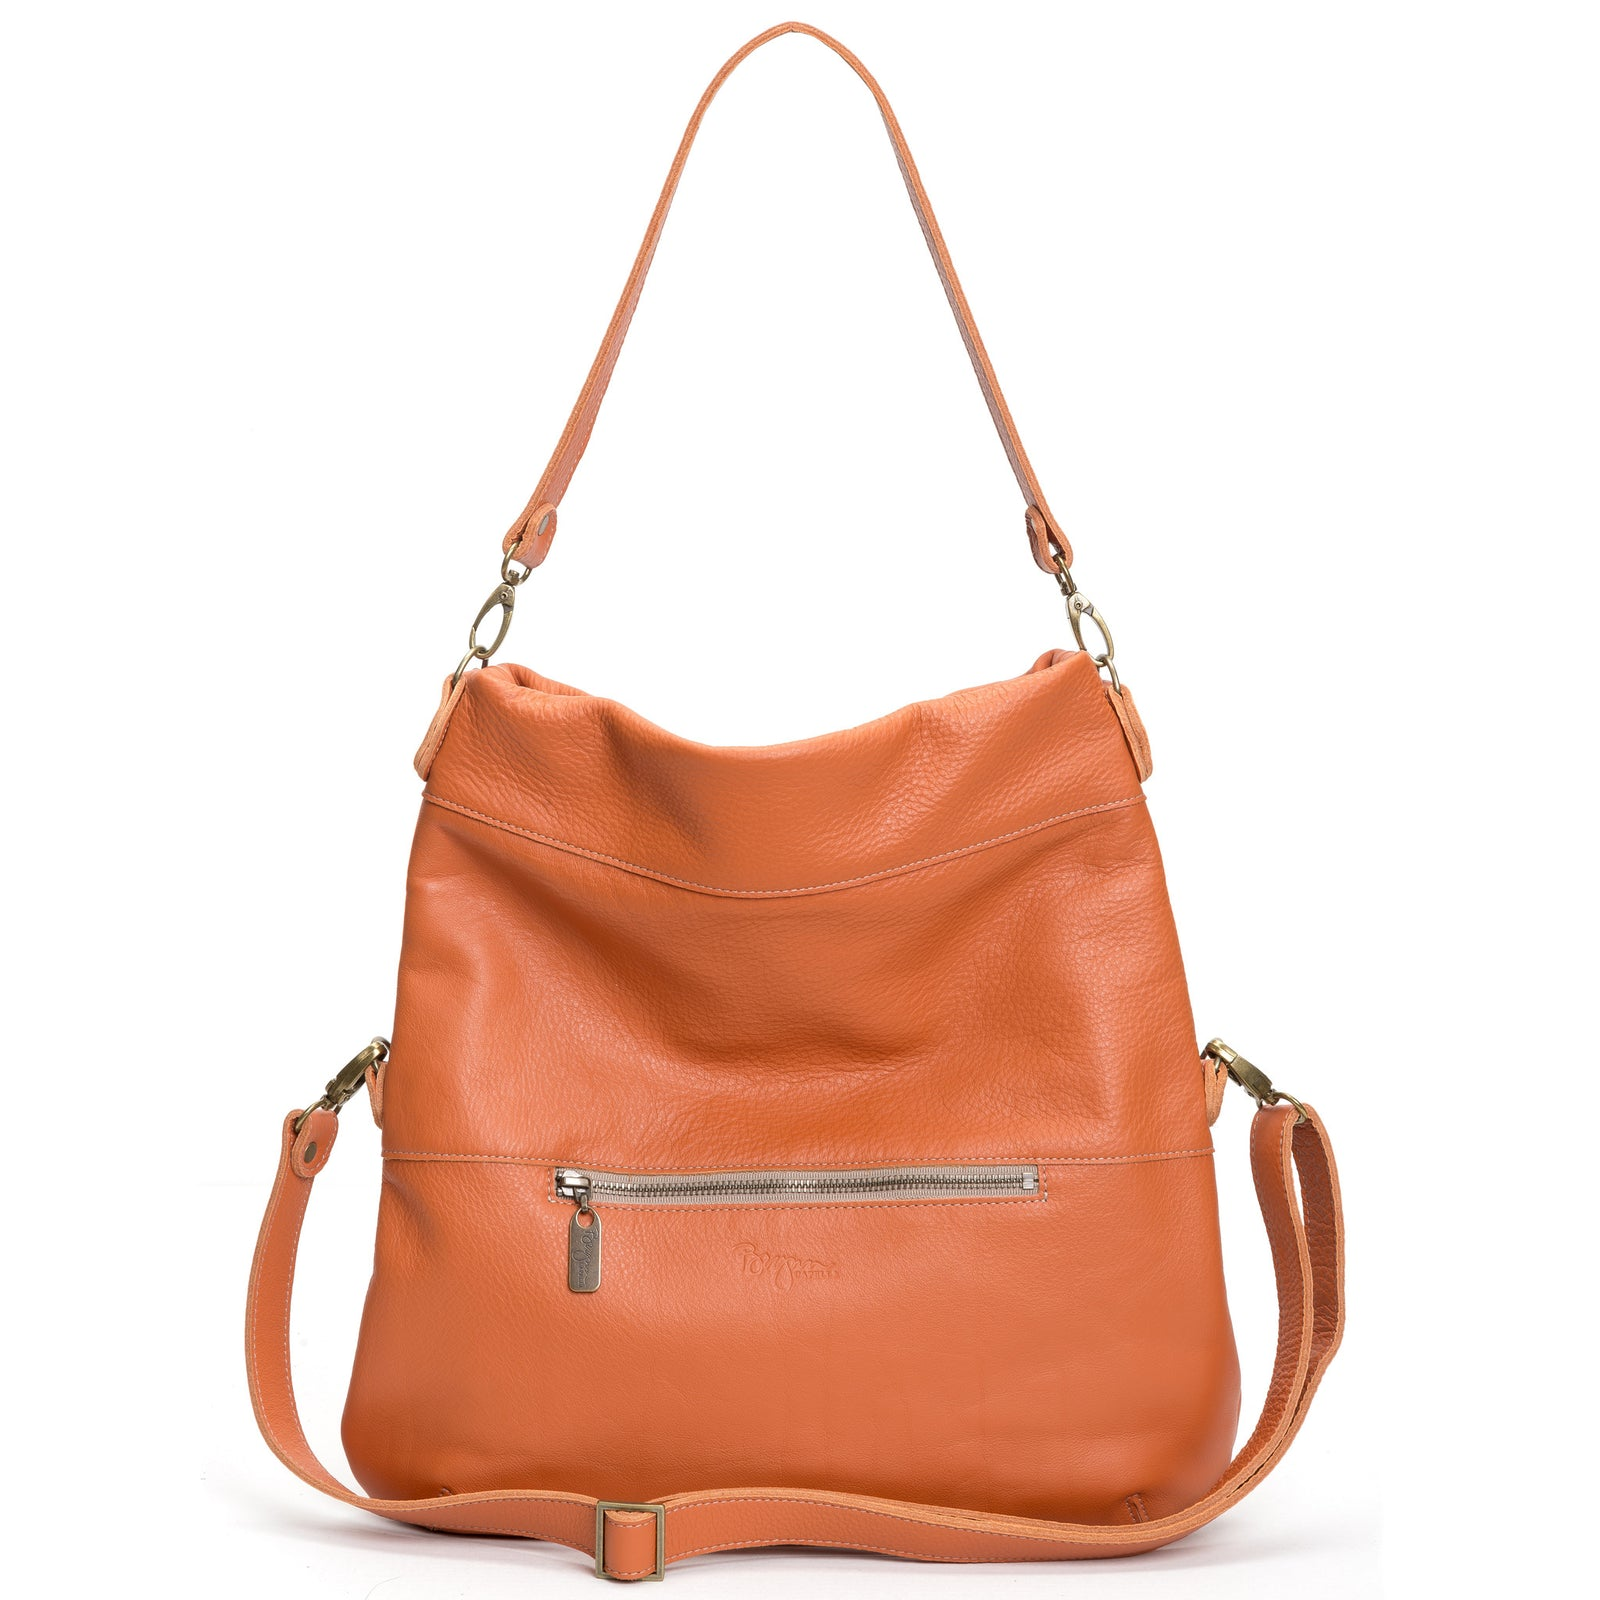 Lauren Crossbody - Toucan - Brynn Capella, Large Crossbody